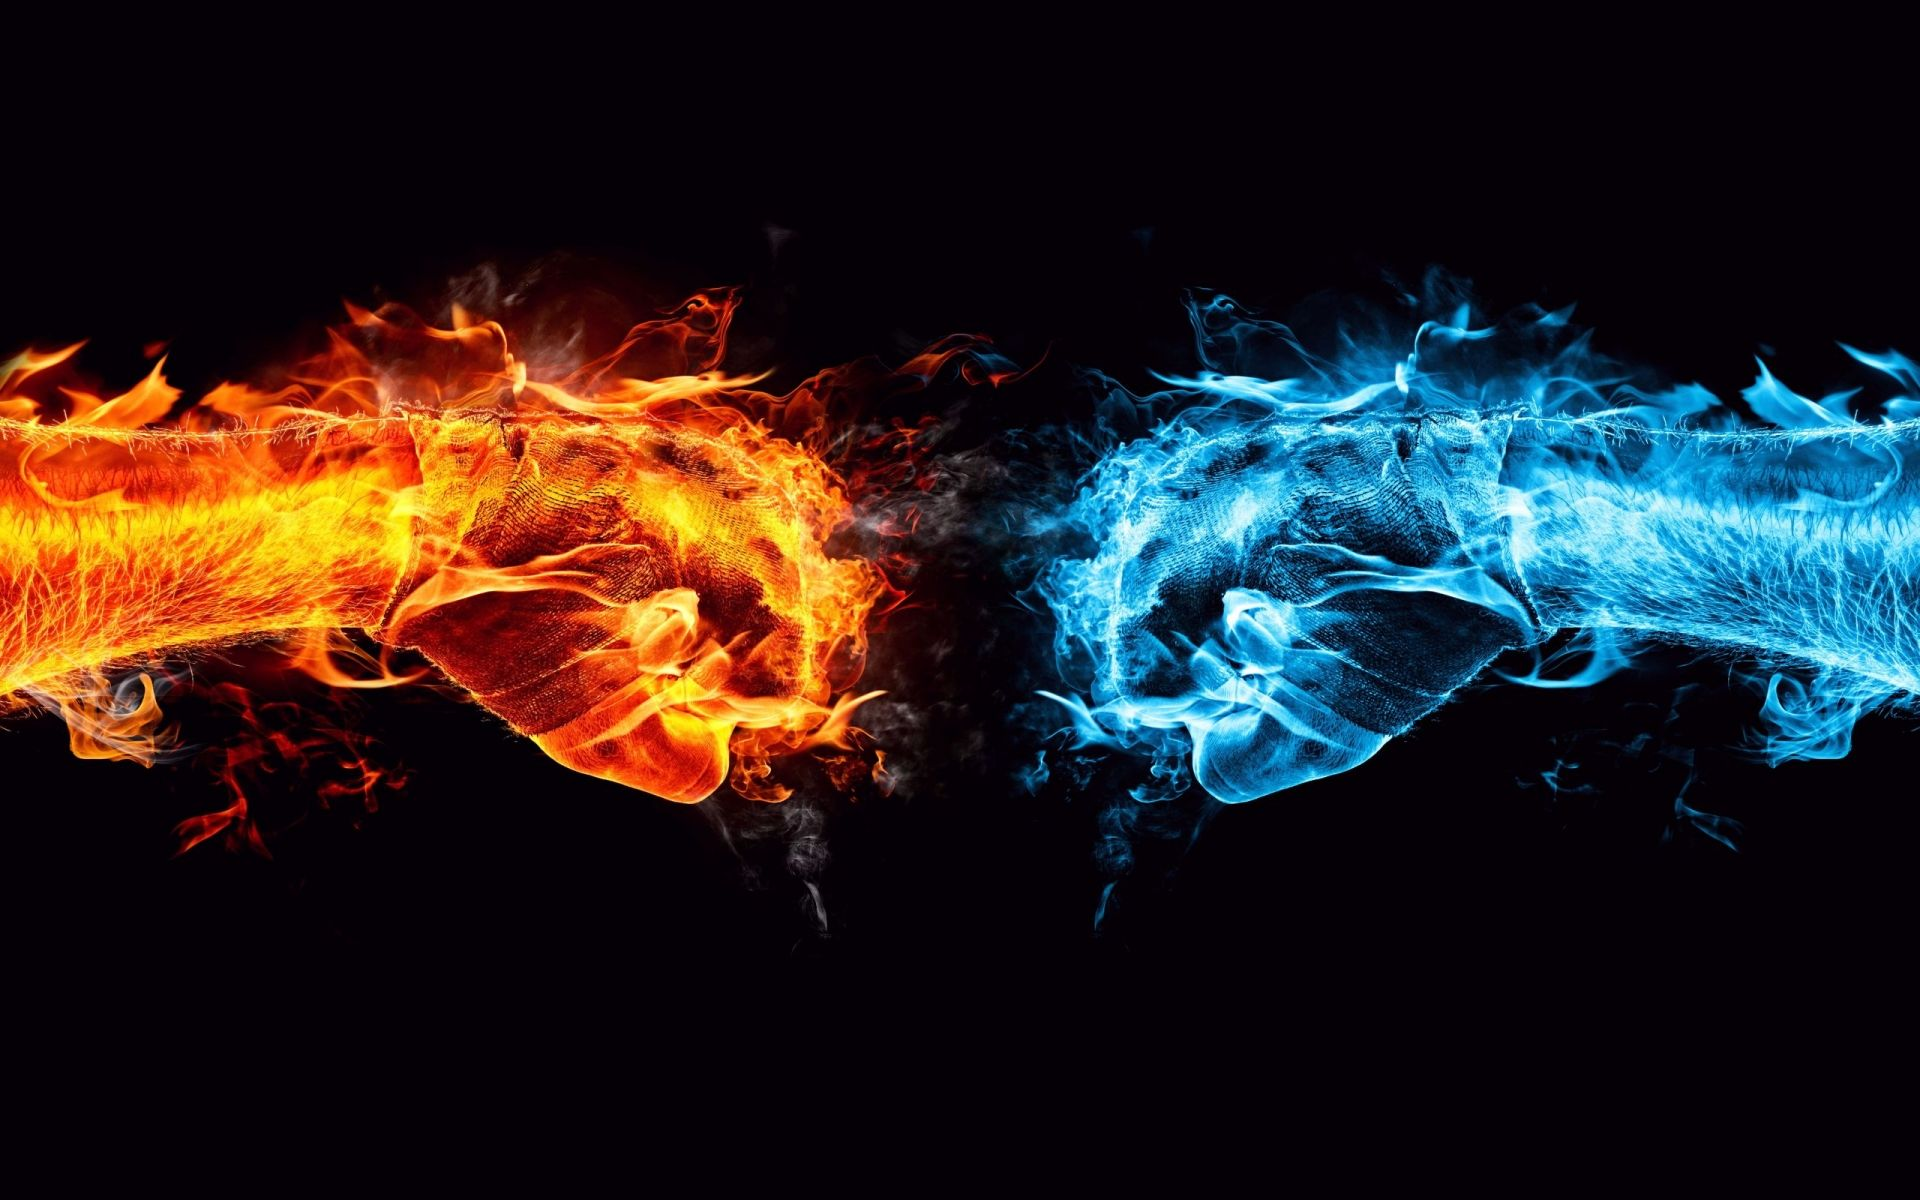 3d Wallpaper Cool Desktop Wallpapers Fire Art Cool Backgrounds